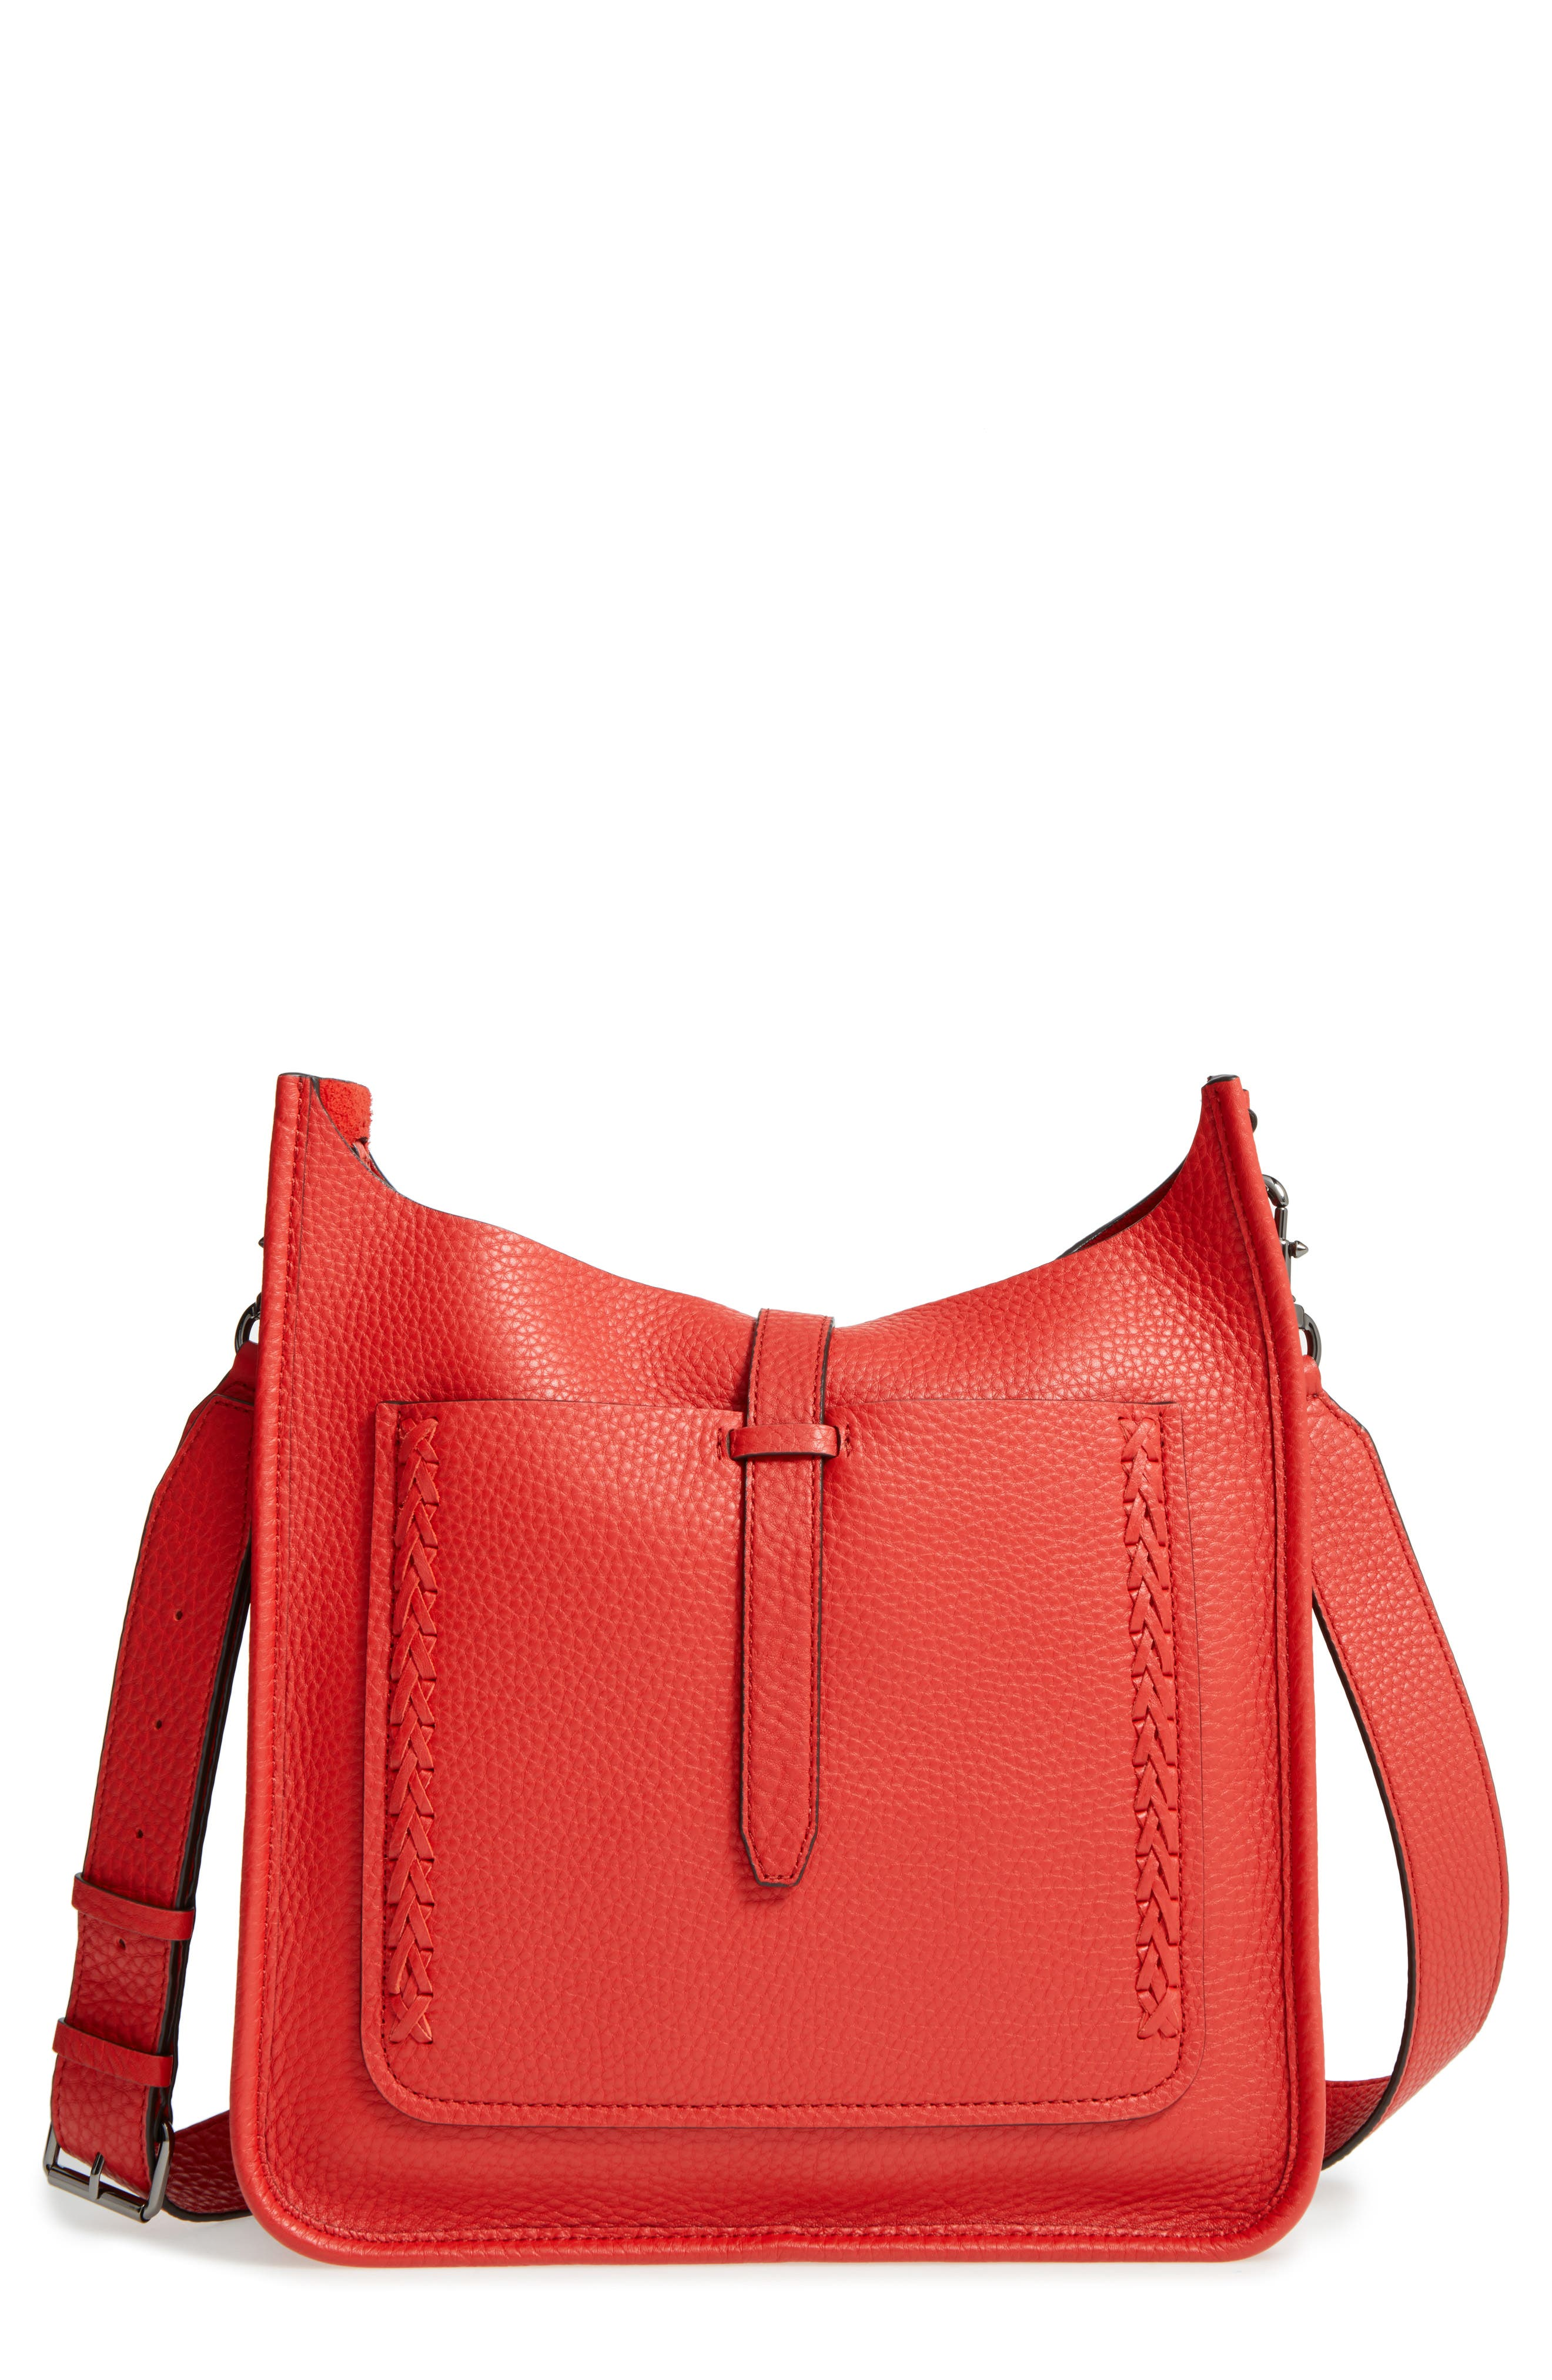 Main Image - Rebecca Minkoff Unlined Whipstitch Feed Bag